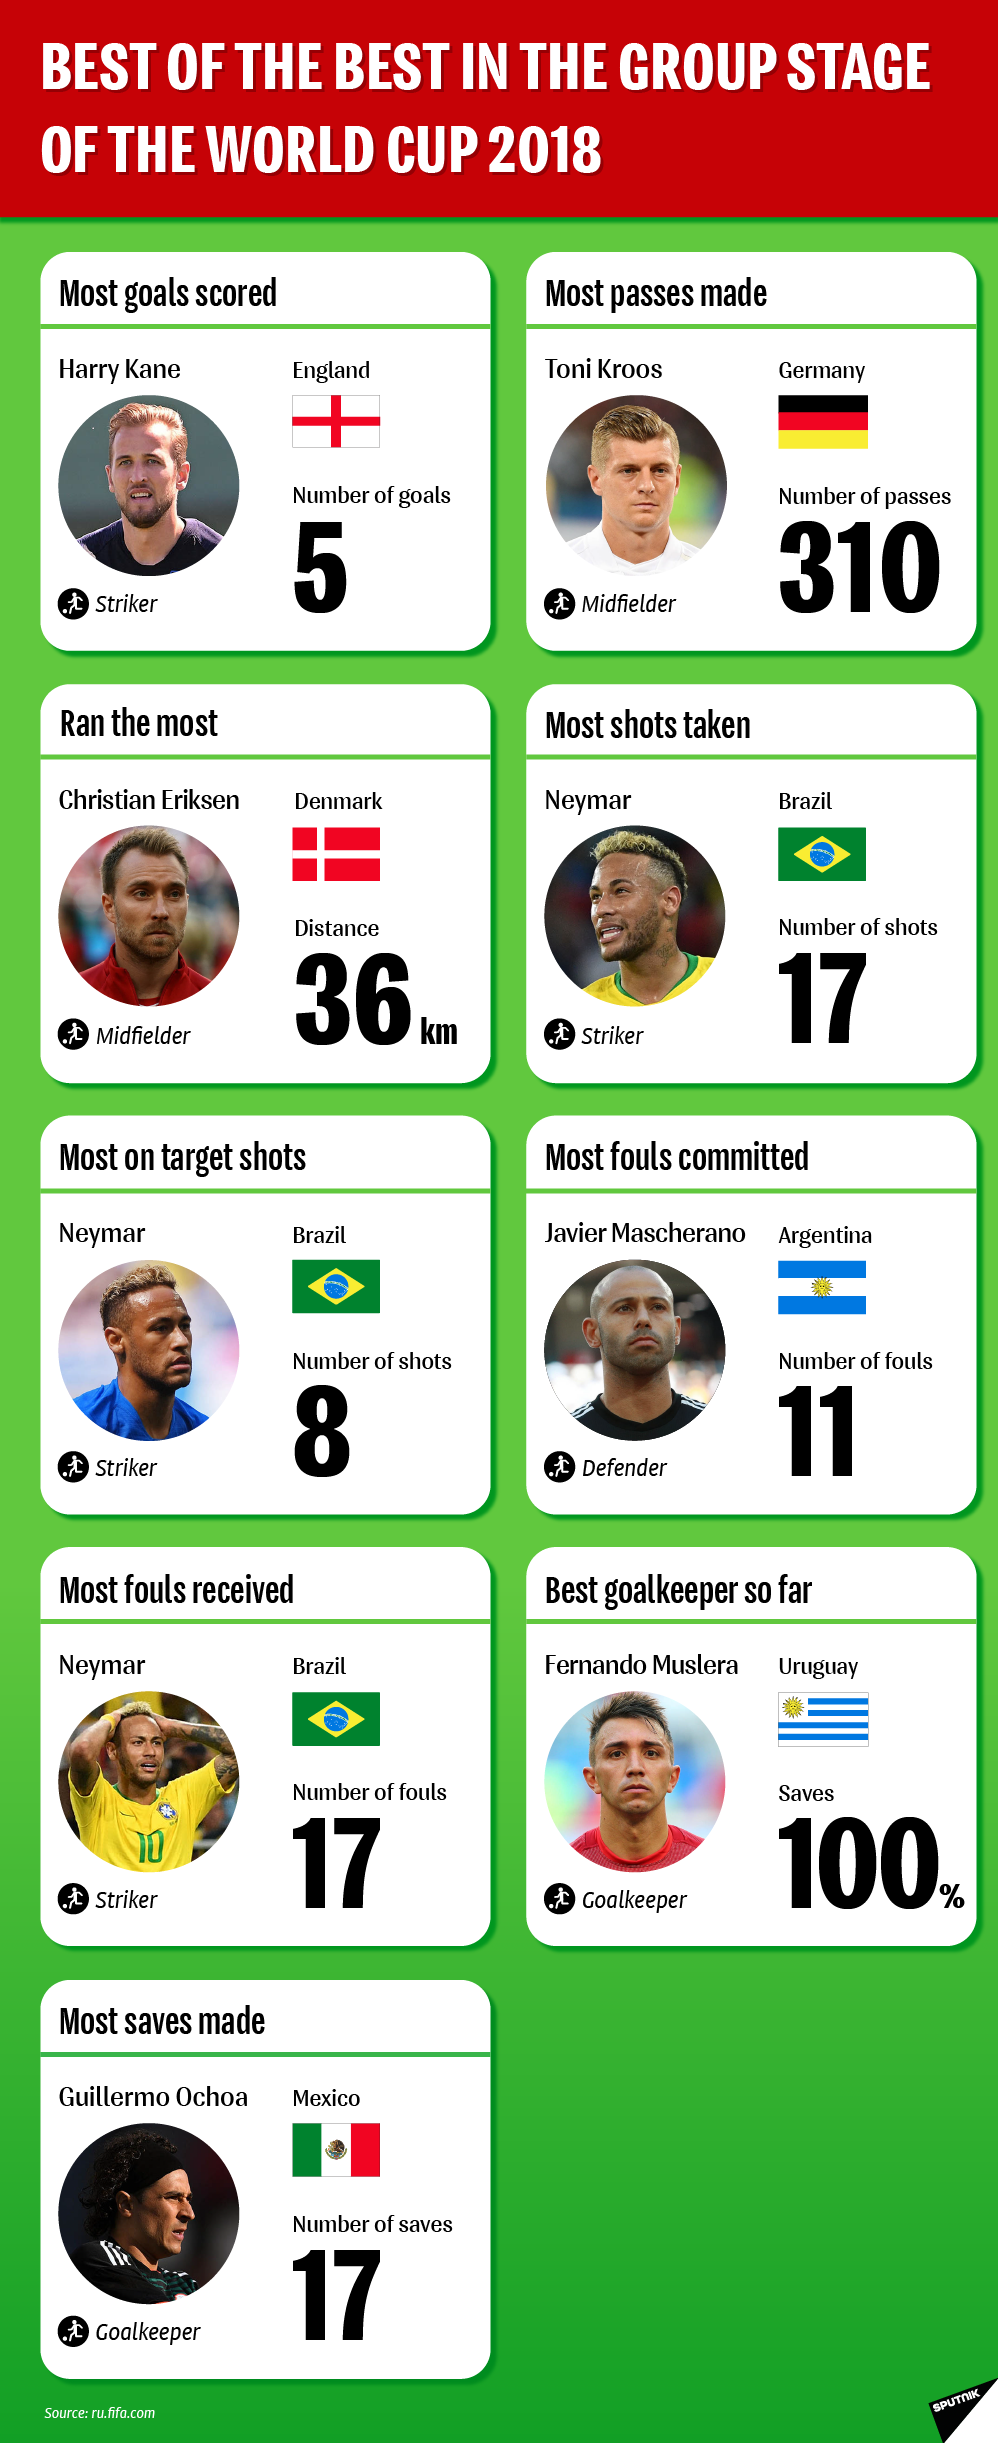 Best of the Best in the Group Stage of the World Cup 2018